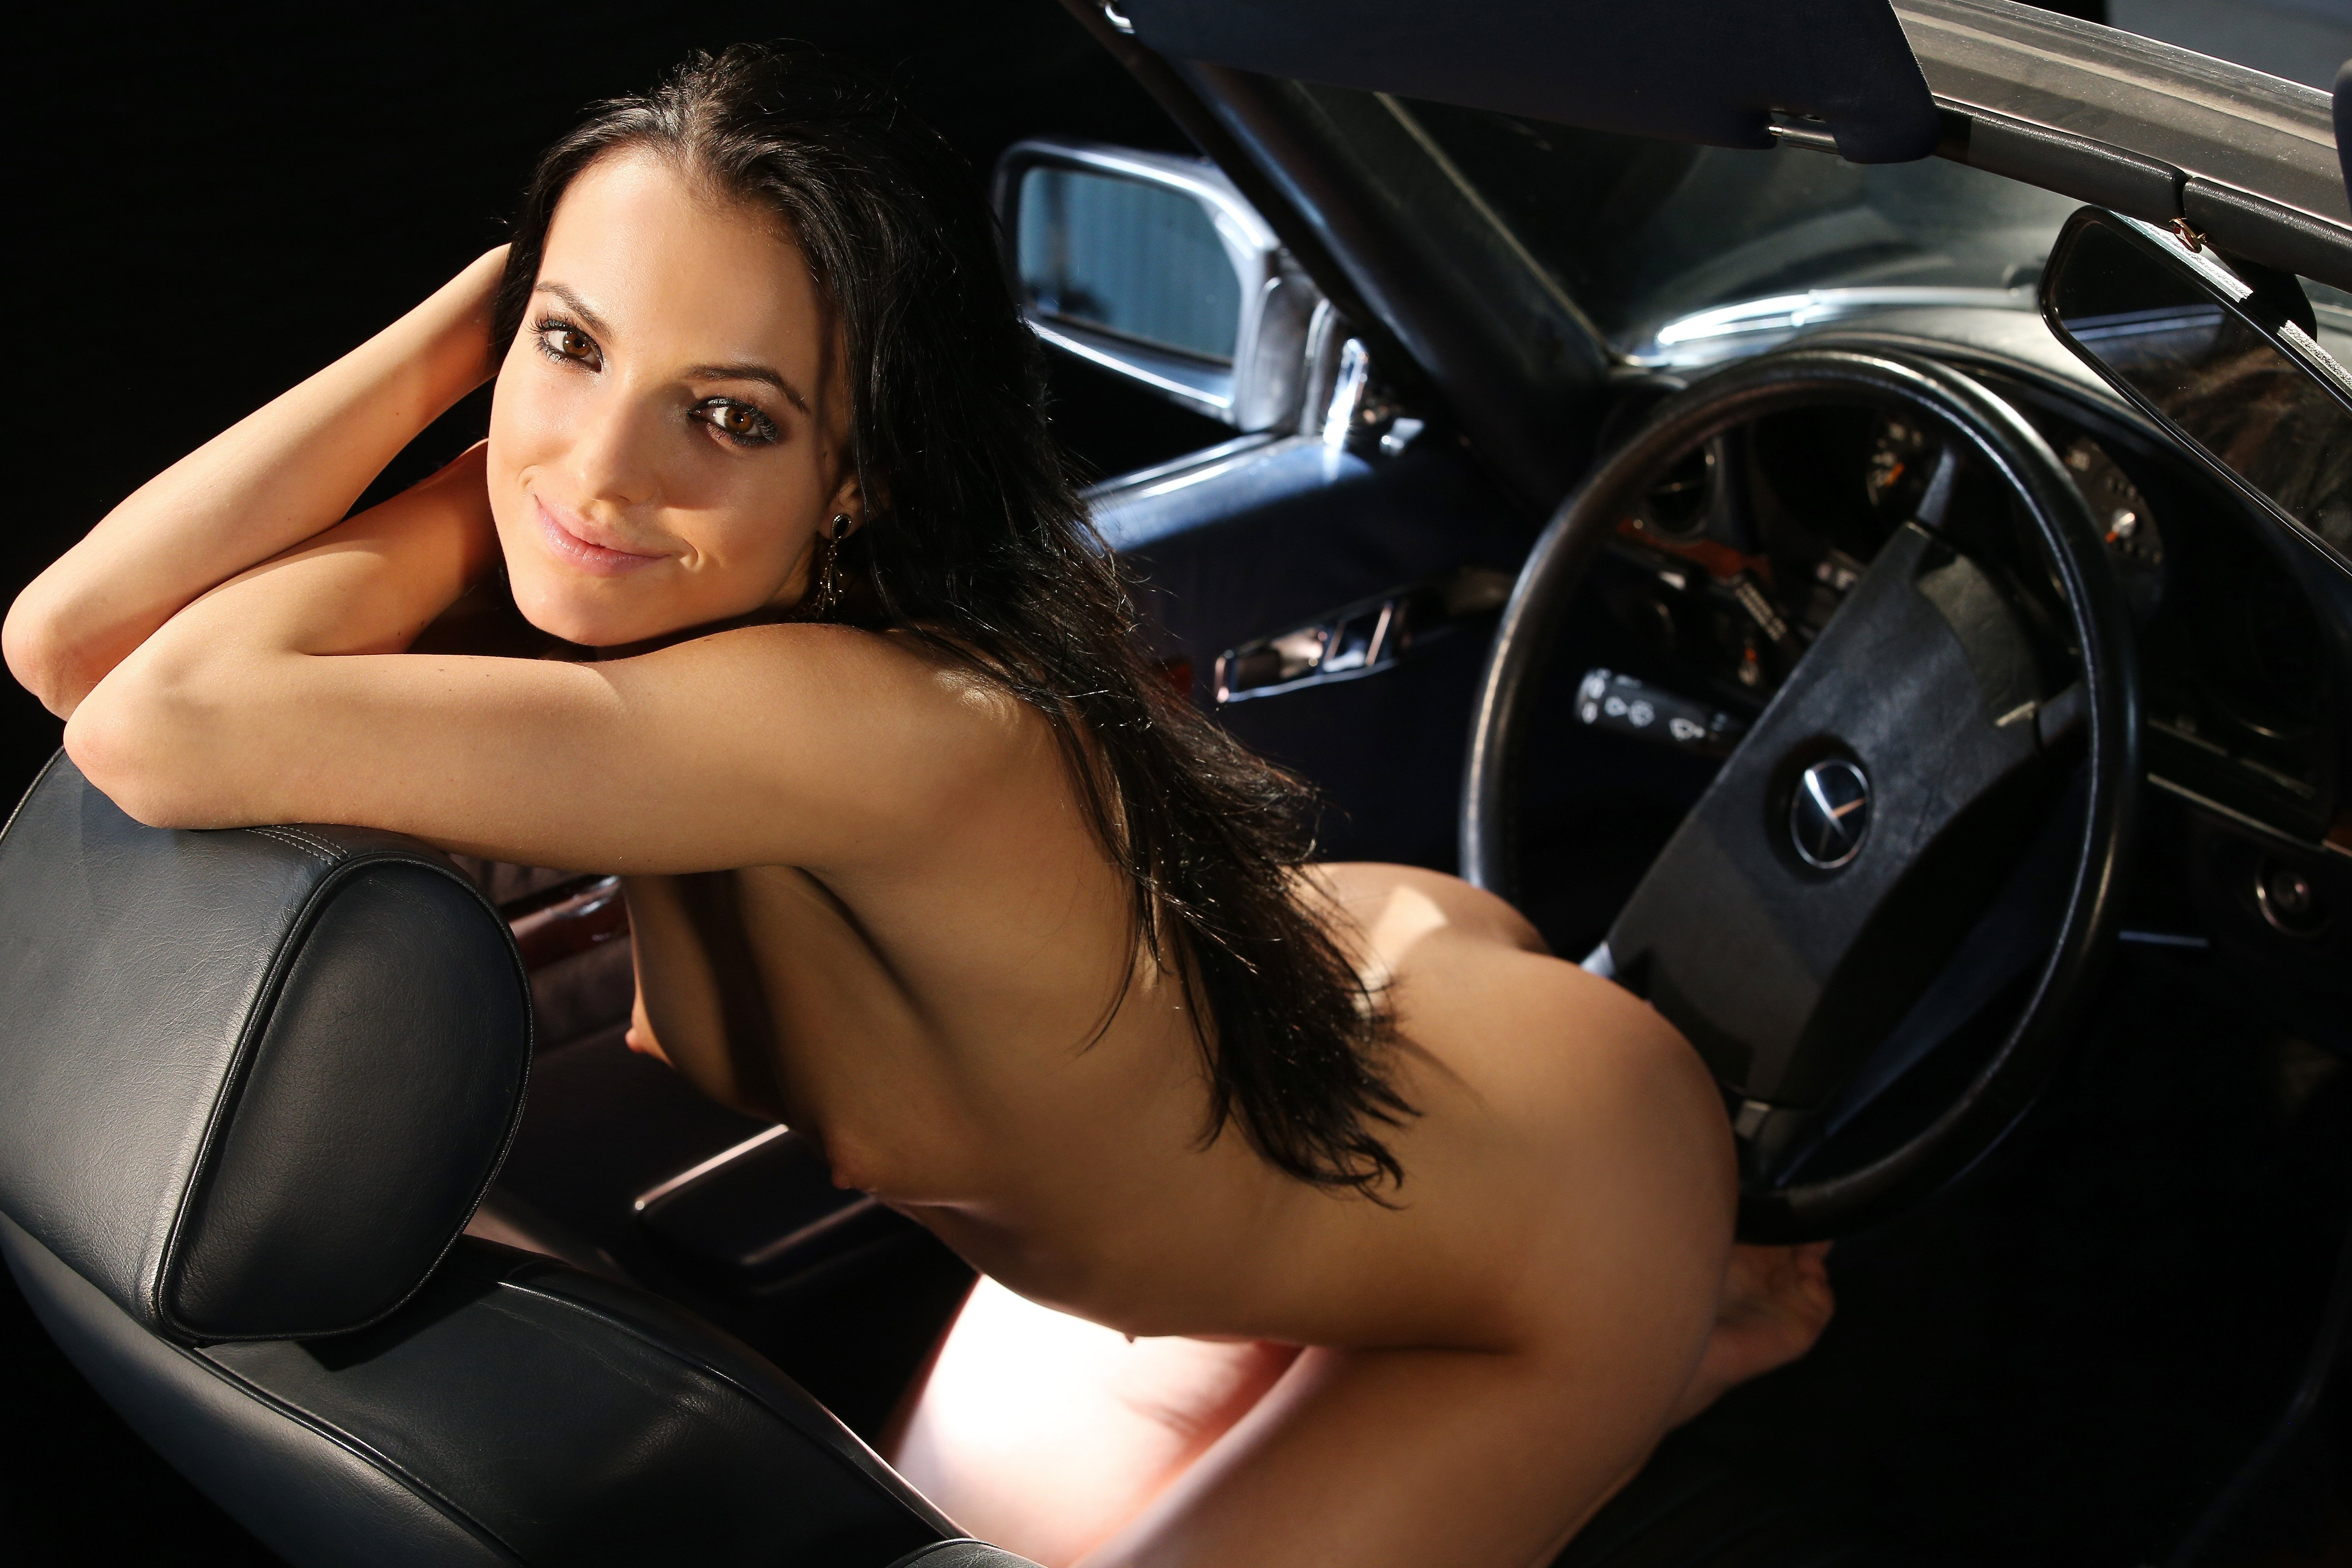 pics-of-fhm-girls-naked-by-cars-dean-hot-asian